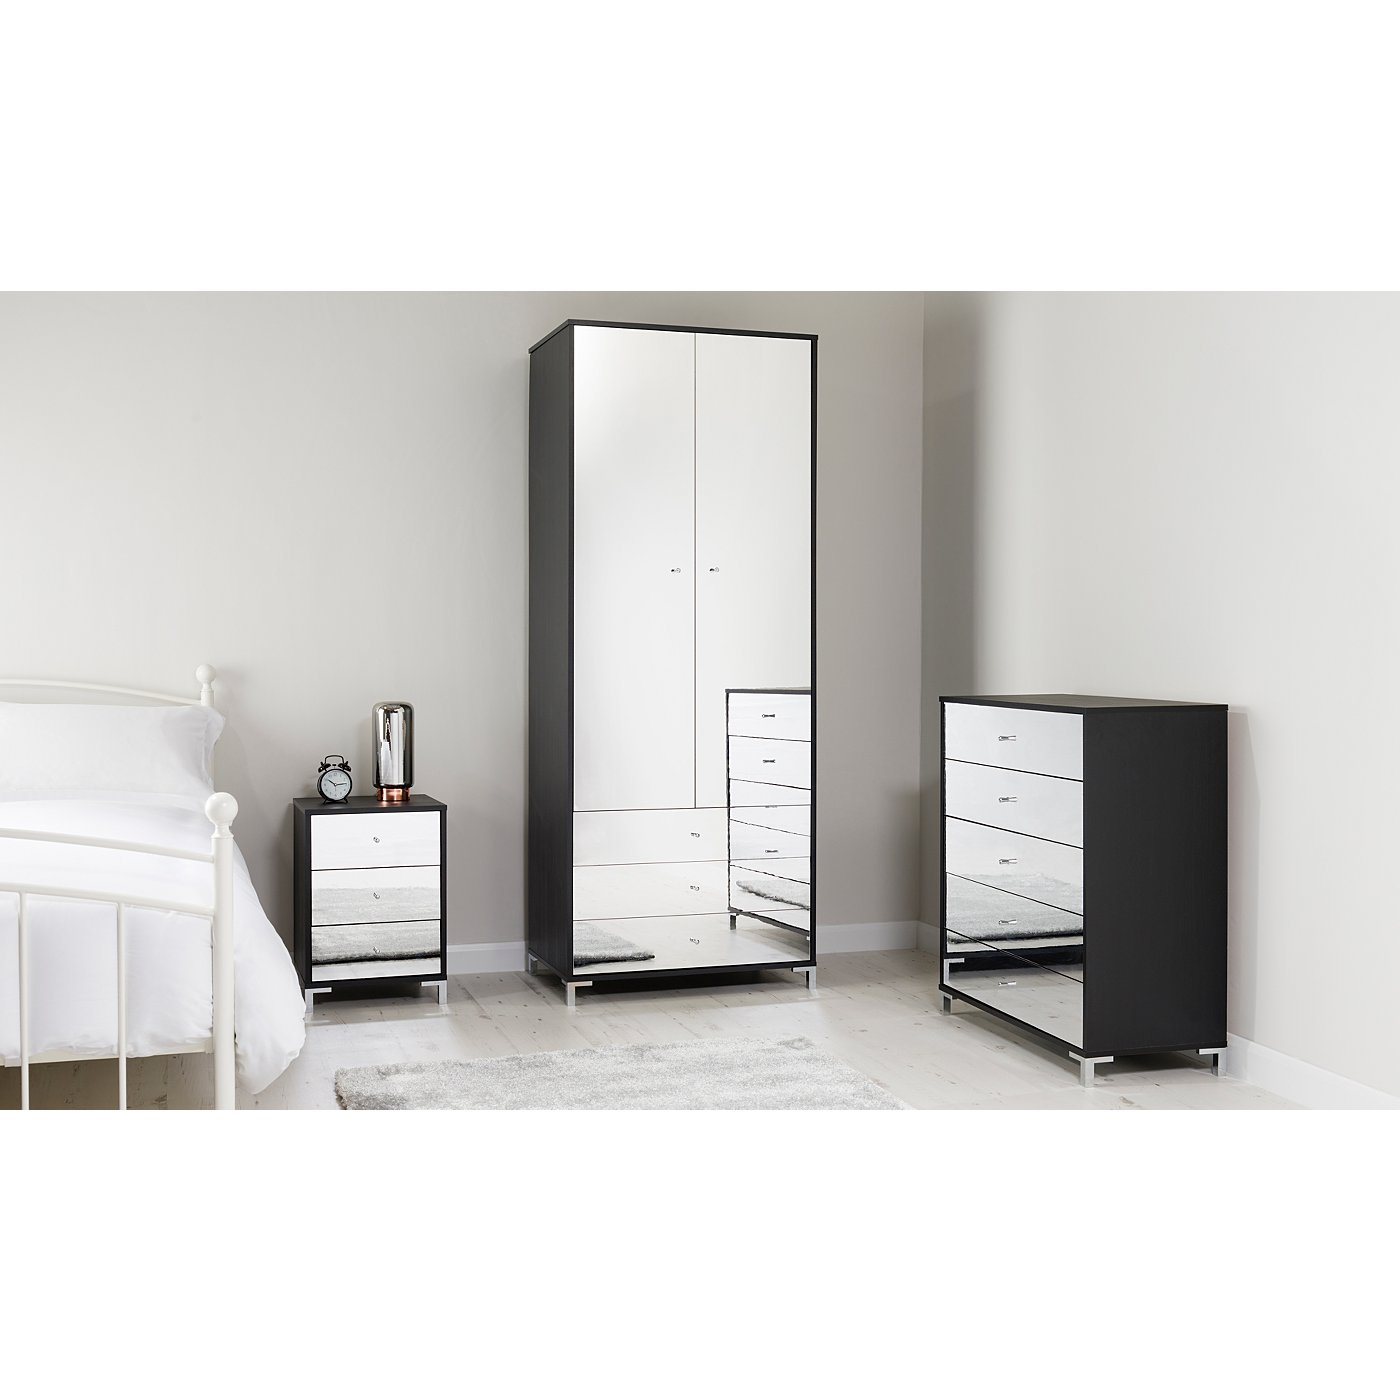 Mirrored Bedroom Furniture Uk Shona Bedroom Furniture Range Black Oak Effect And Mirror Effect